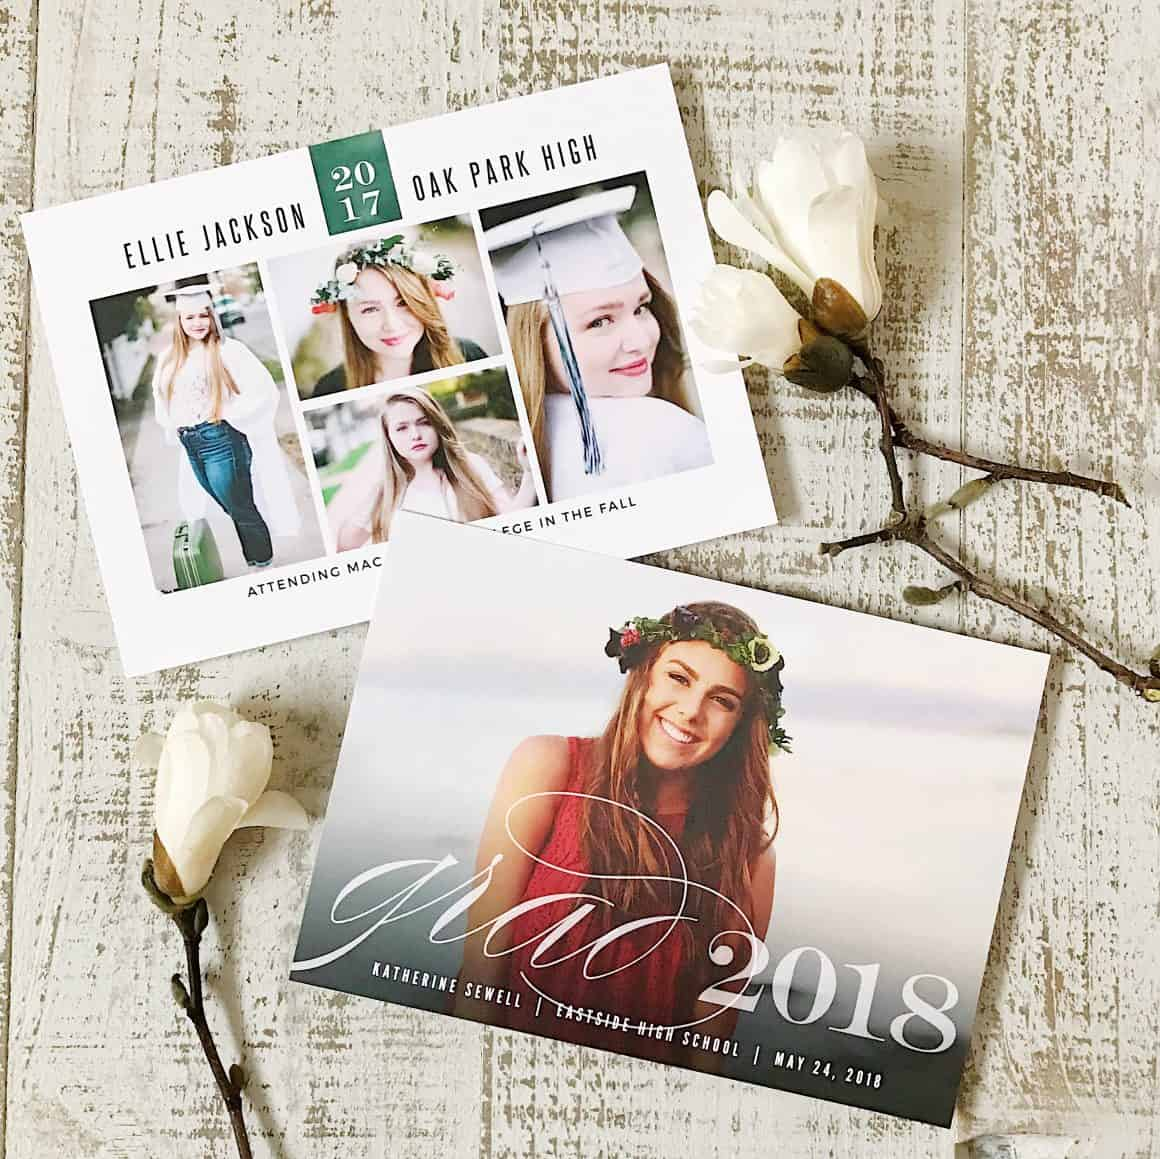 Amazing College Graduation Invites and Gift Ideas - If you are looking for college graduation invitations with photo options, there are plenty of those to choose from as well.